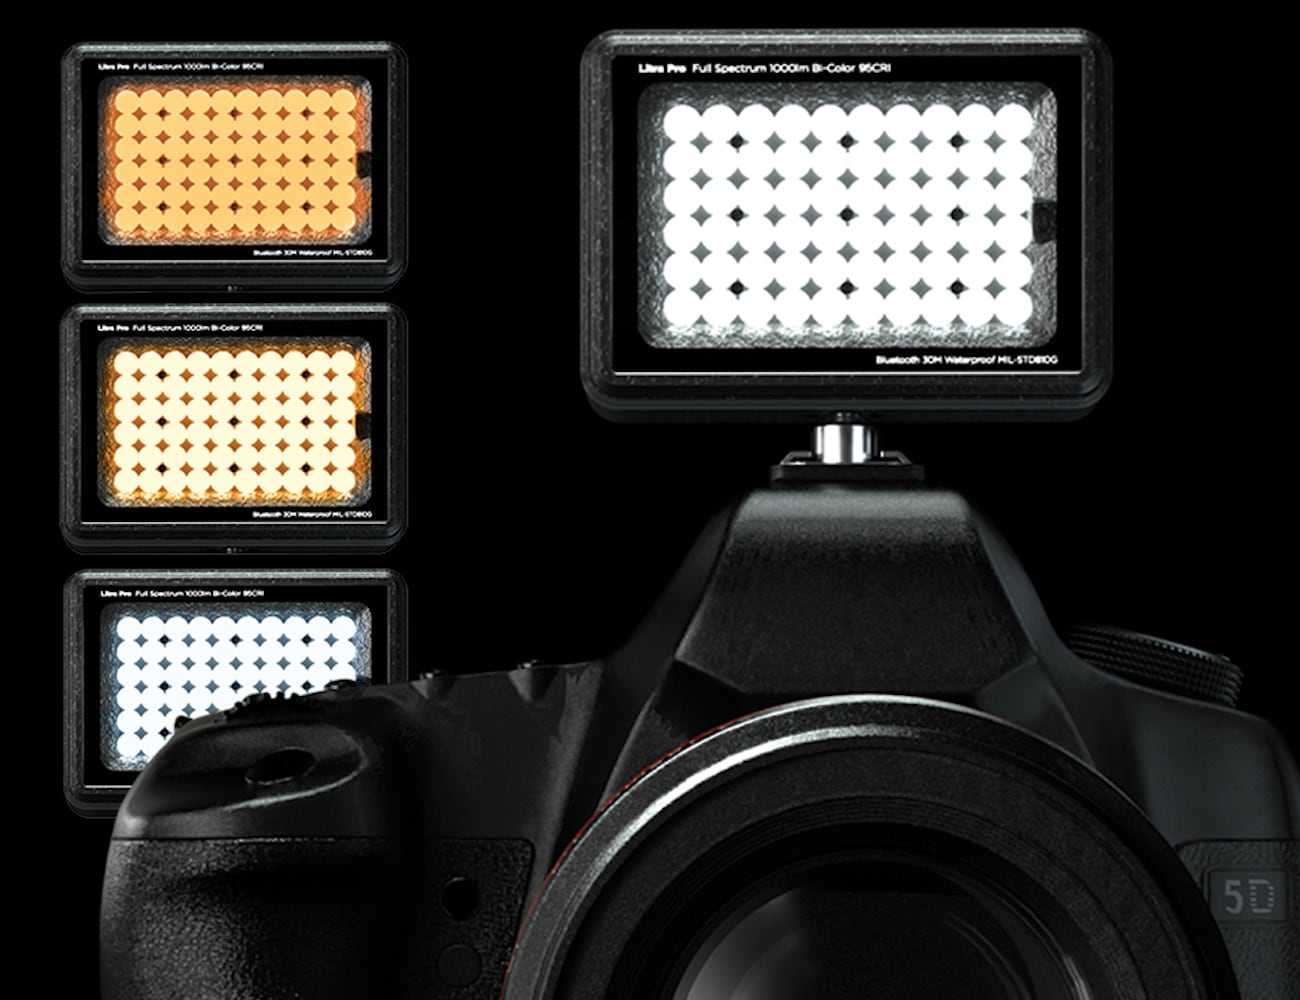 LitraPro Full Spectrum Compact Light